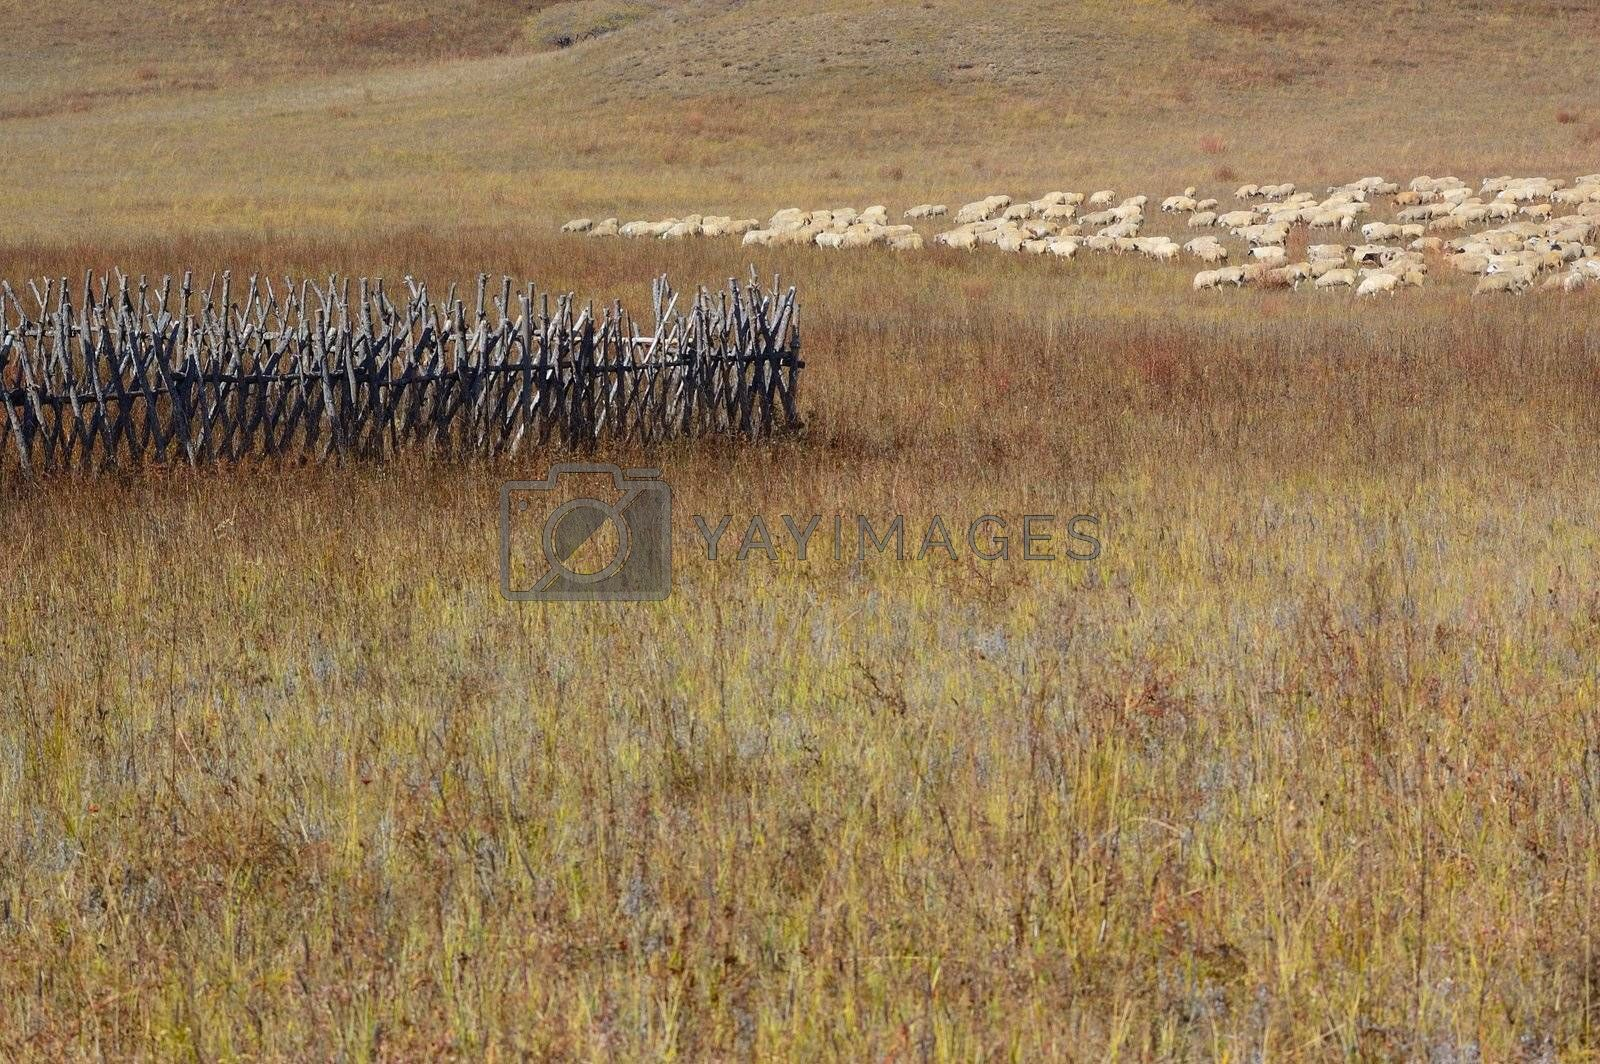 Group of sheep in Bashang grassland, Hebei, China